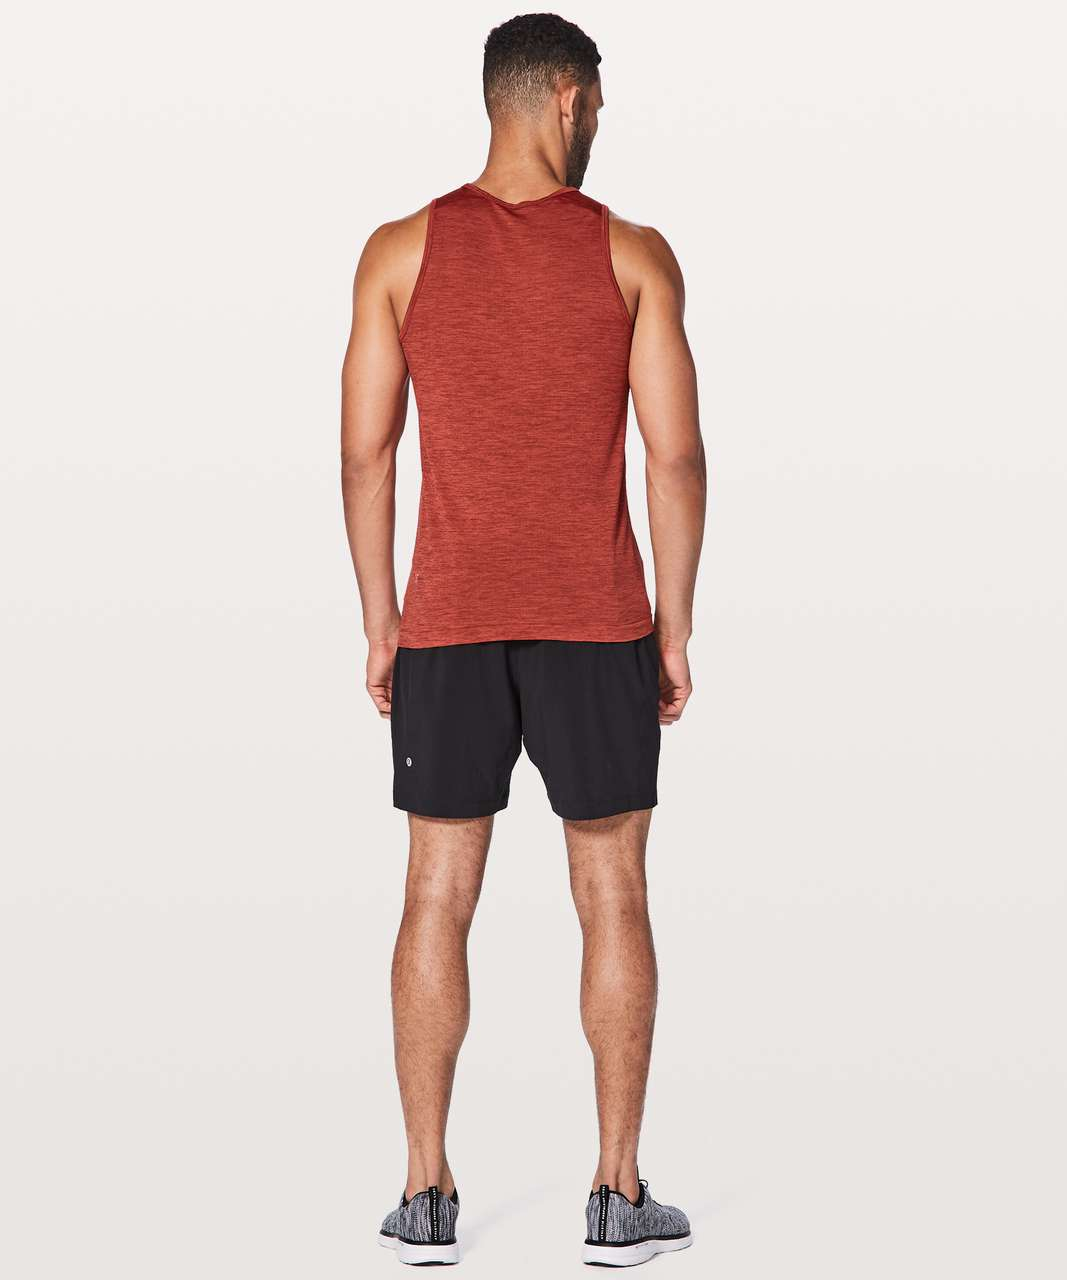 Lululemon Metal Vent Tech Surge Tank - Oxidized / Terracotta Warrior